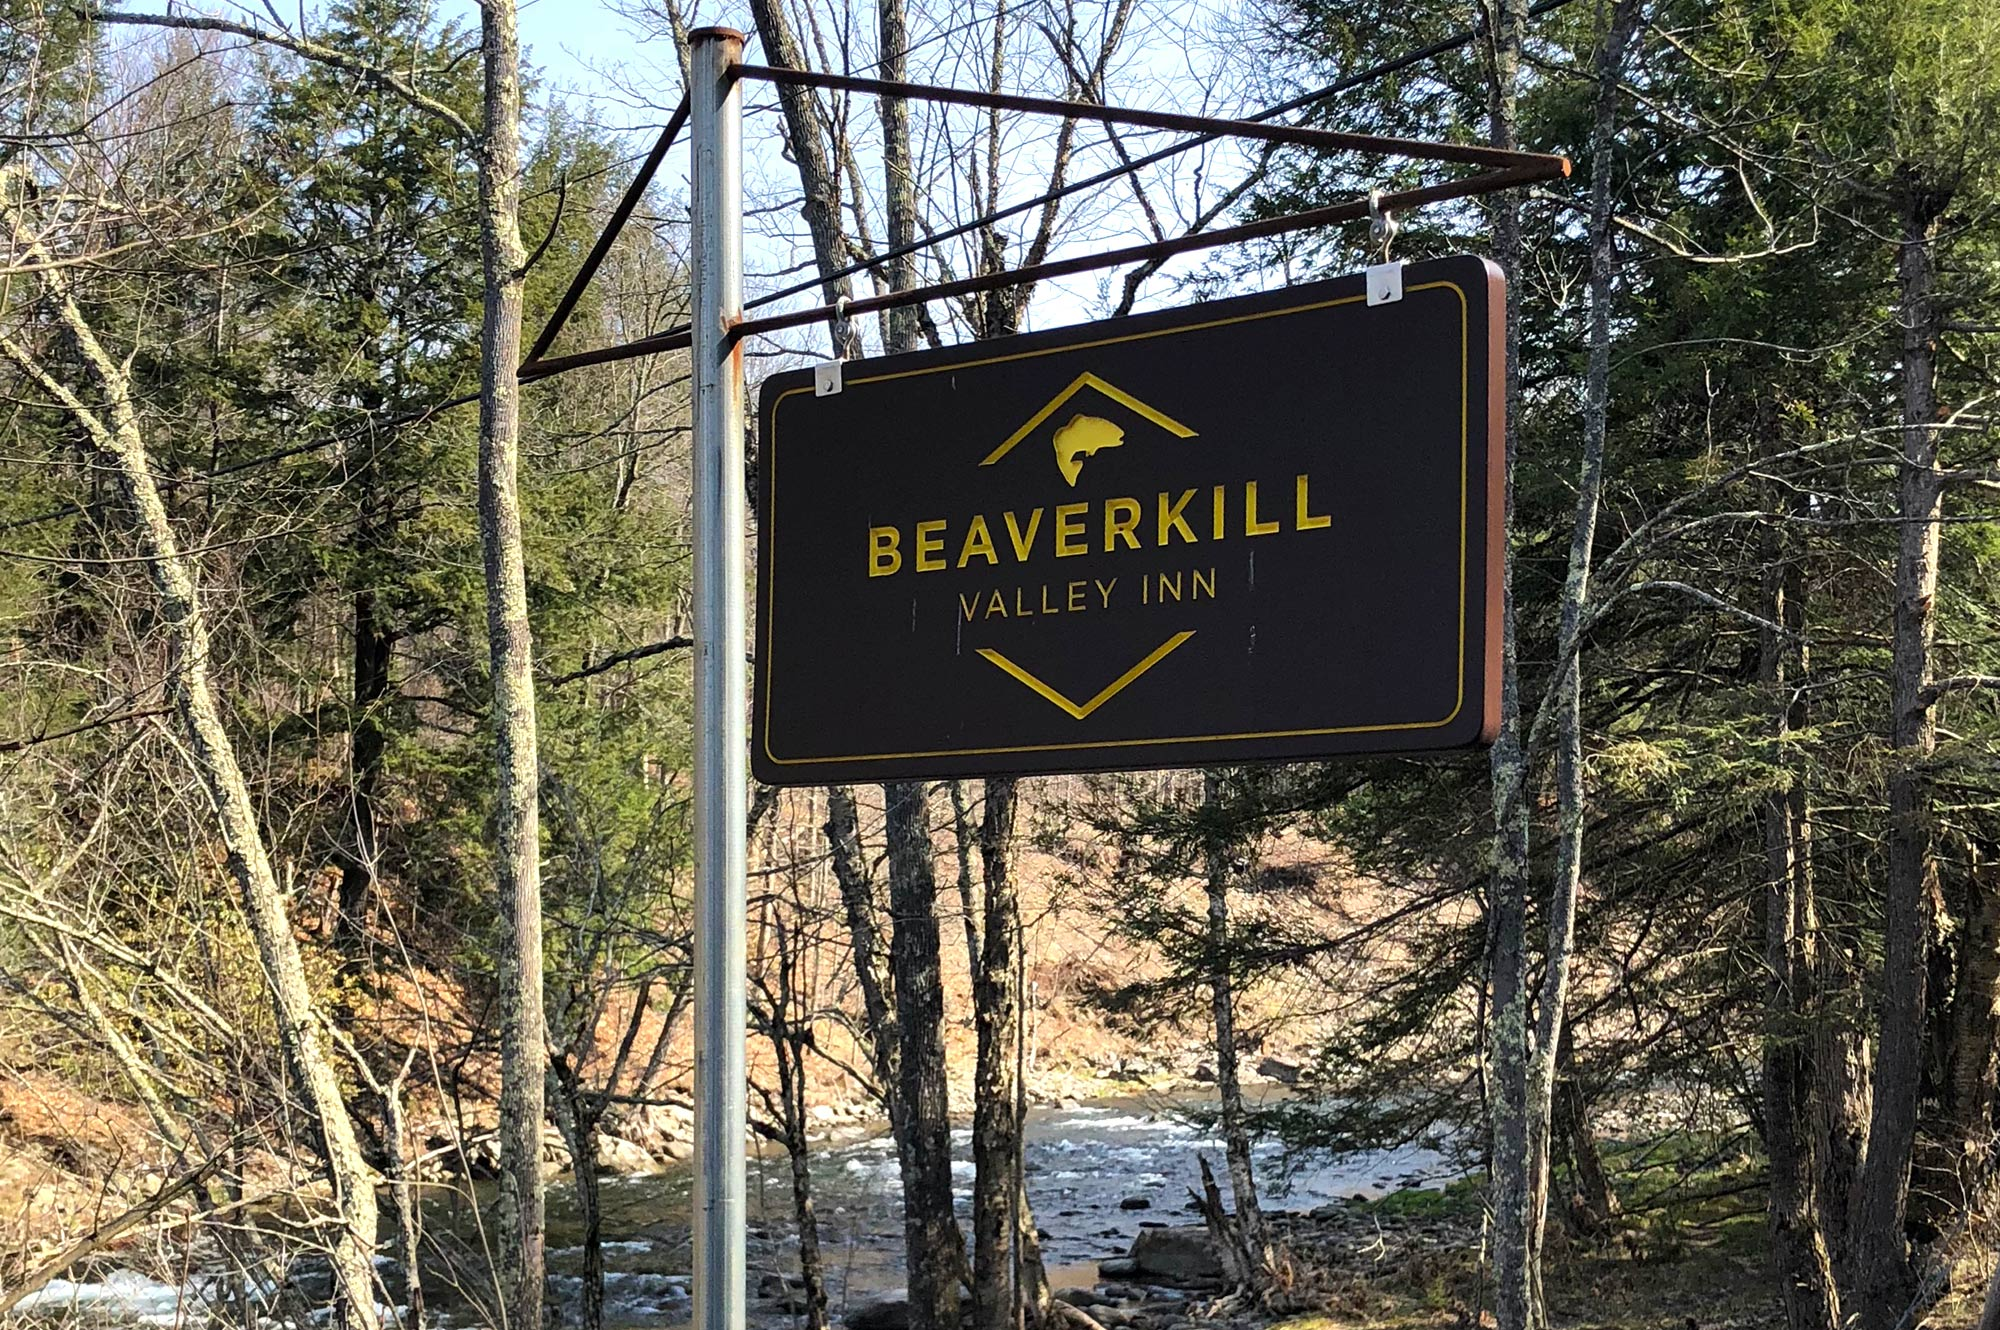 Beaverkill Valley Inn sign on the riverside